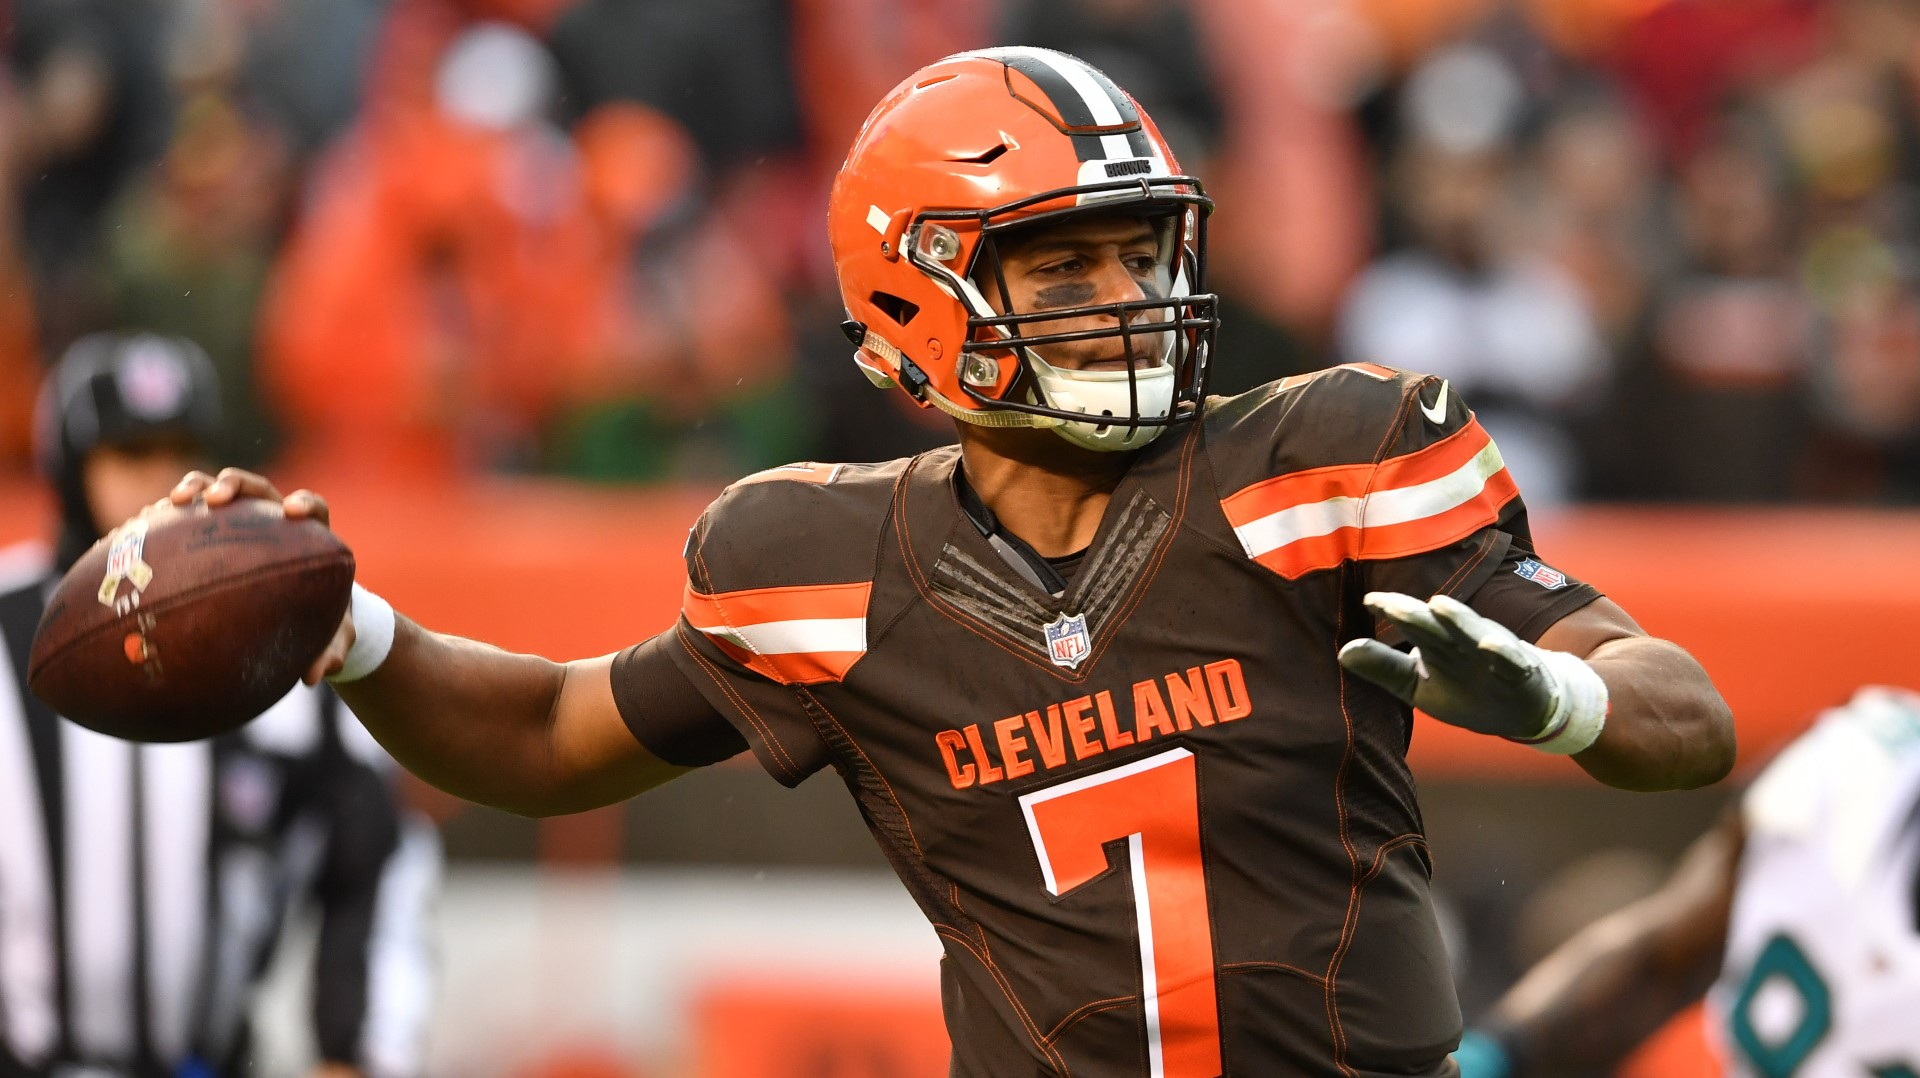 Report: Cleveland Browns in process of re-designing uniforms ...